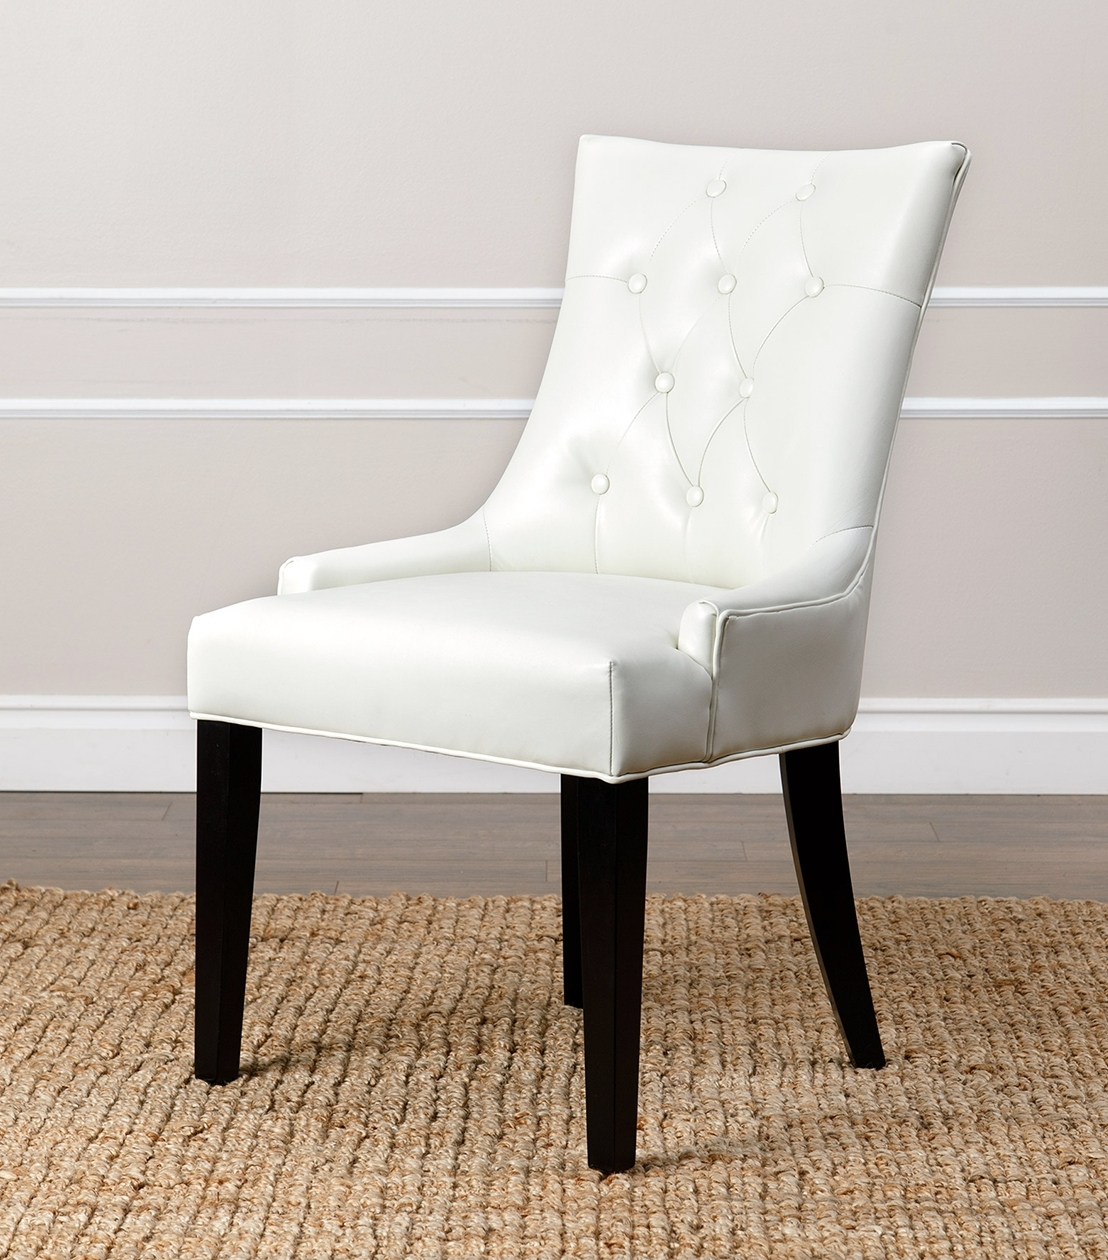 Dining Chairs : Napa Leather Dining Chair, Ivory Intended For Best And Newest Ivory Leather Dining Chairs (View 10 of 25)